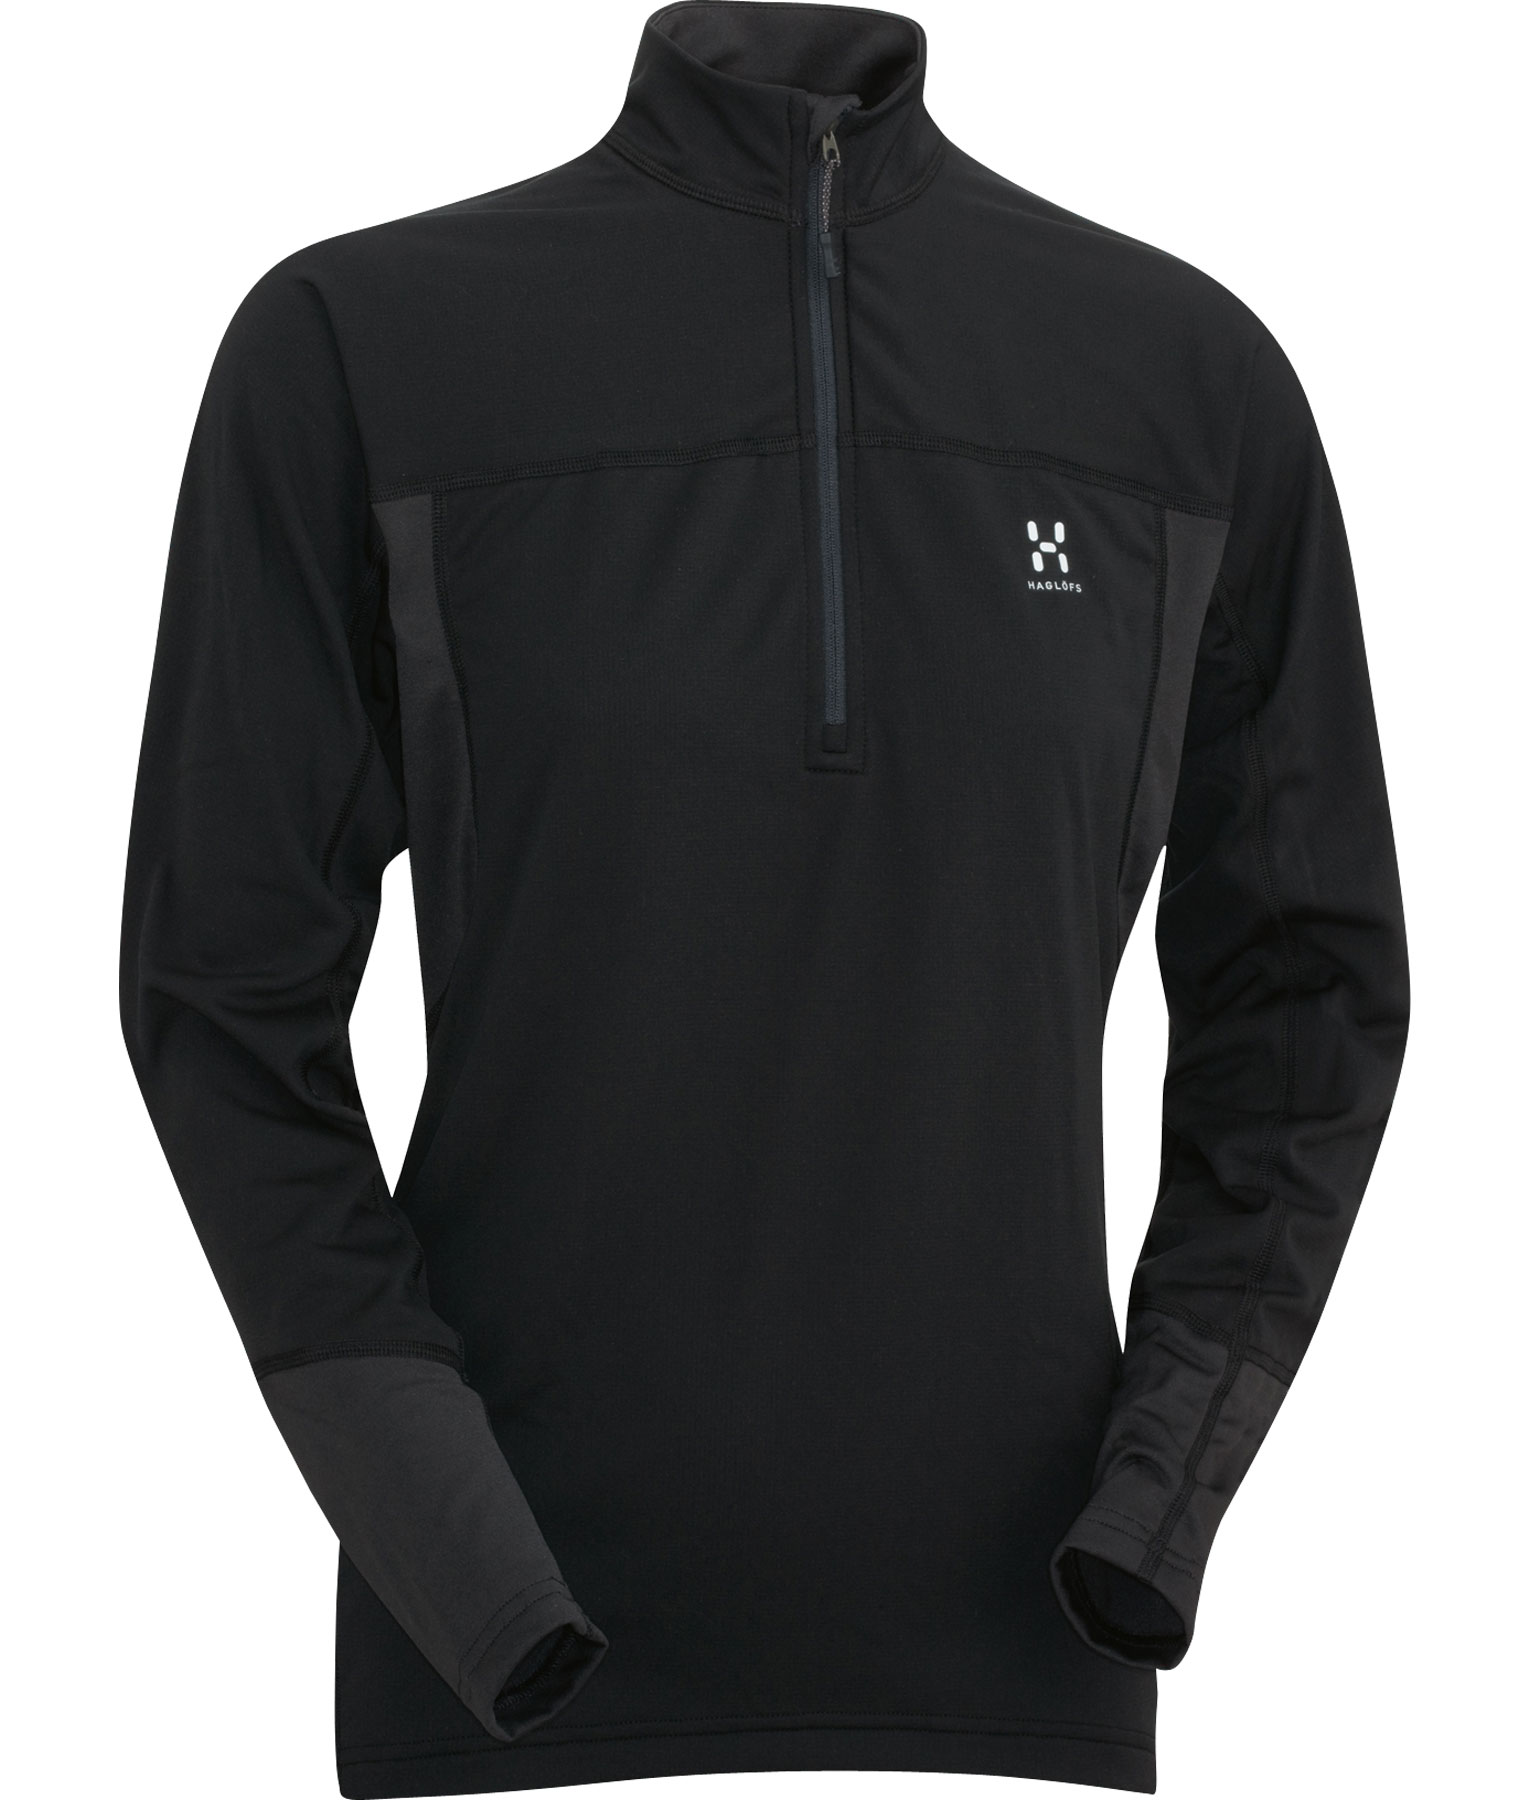 Haglöfs Actives Regular Q Zip Top black